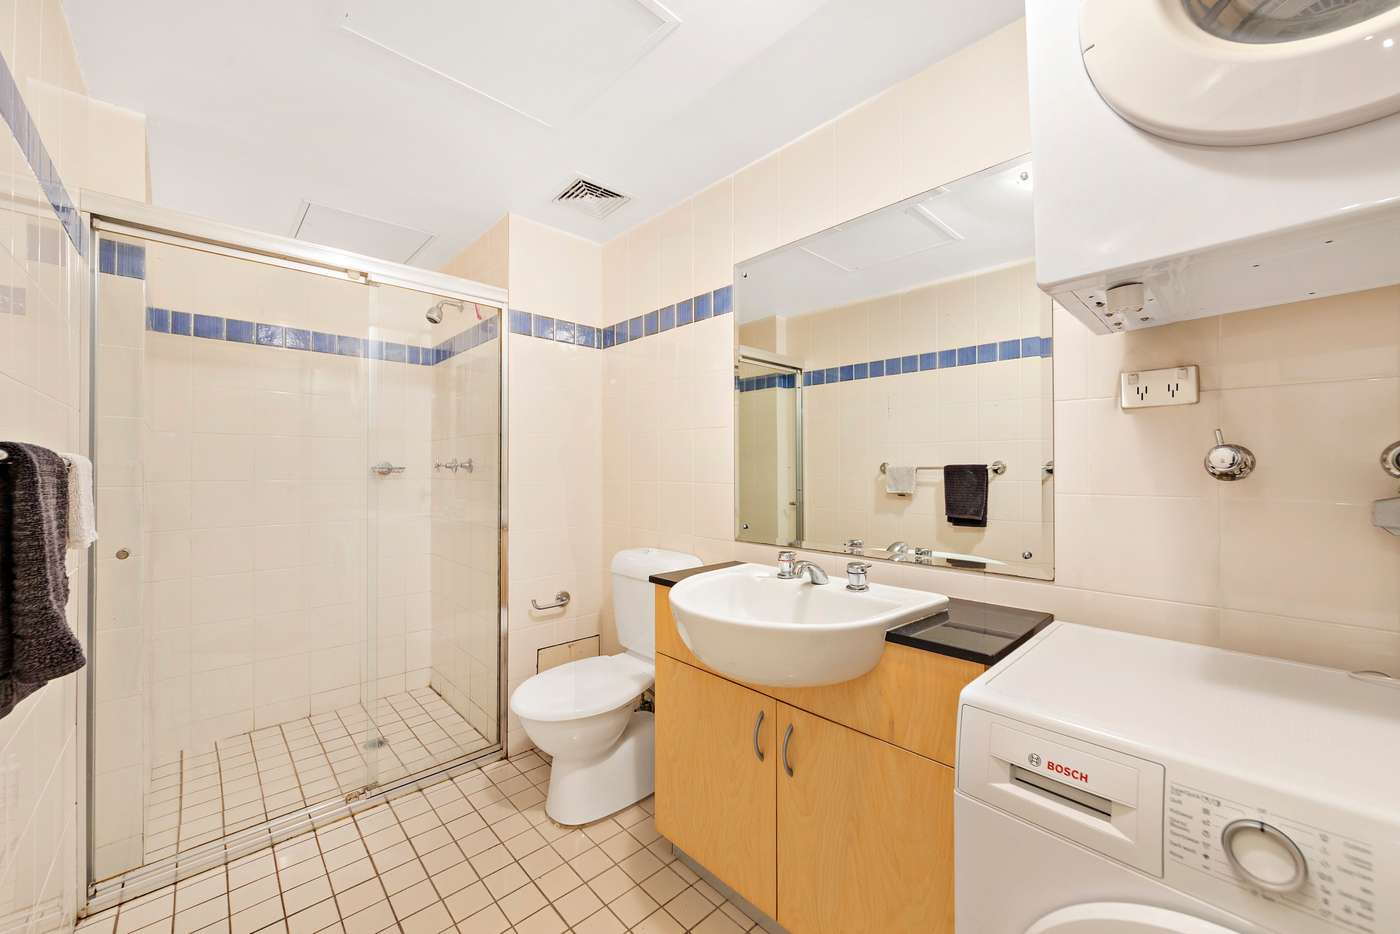 Fifth view of Homely apartment listing, 501/172 Riley Street, Darlinghurst NSW 2010